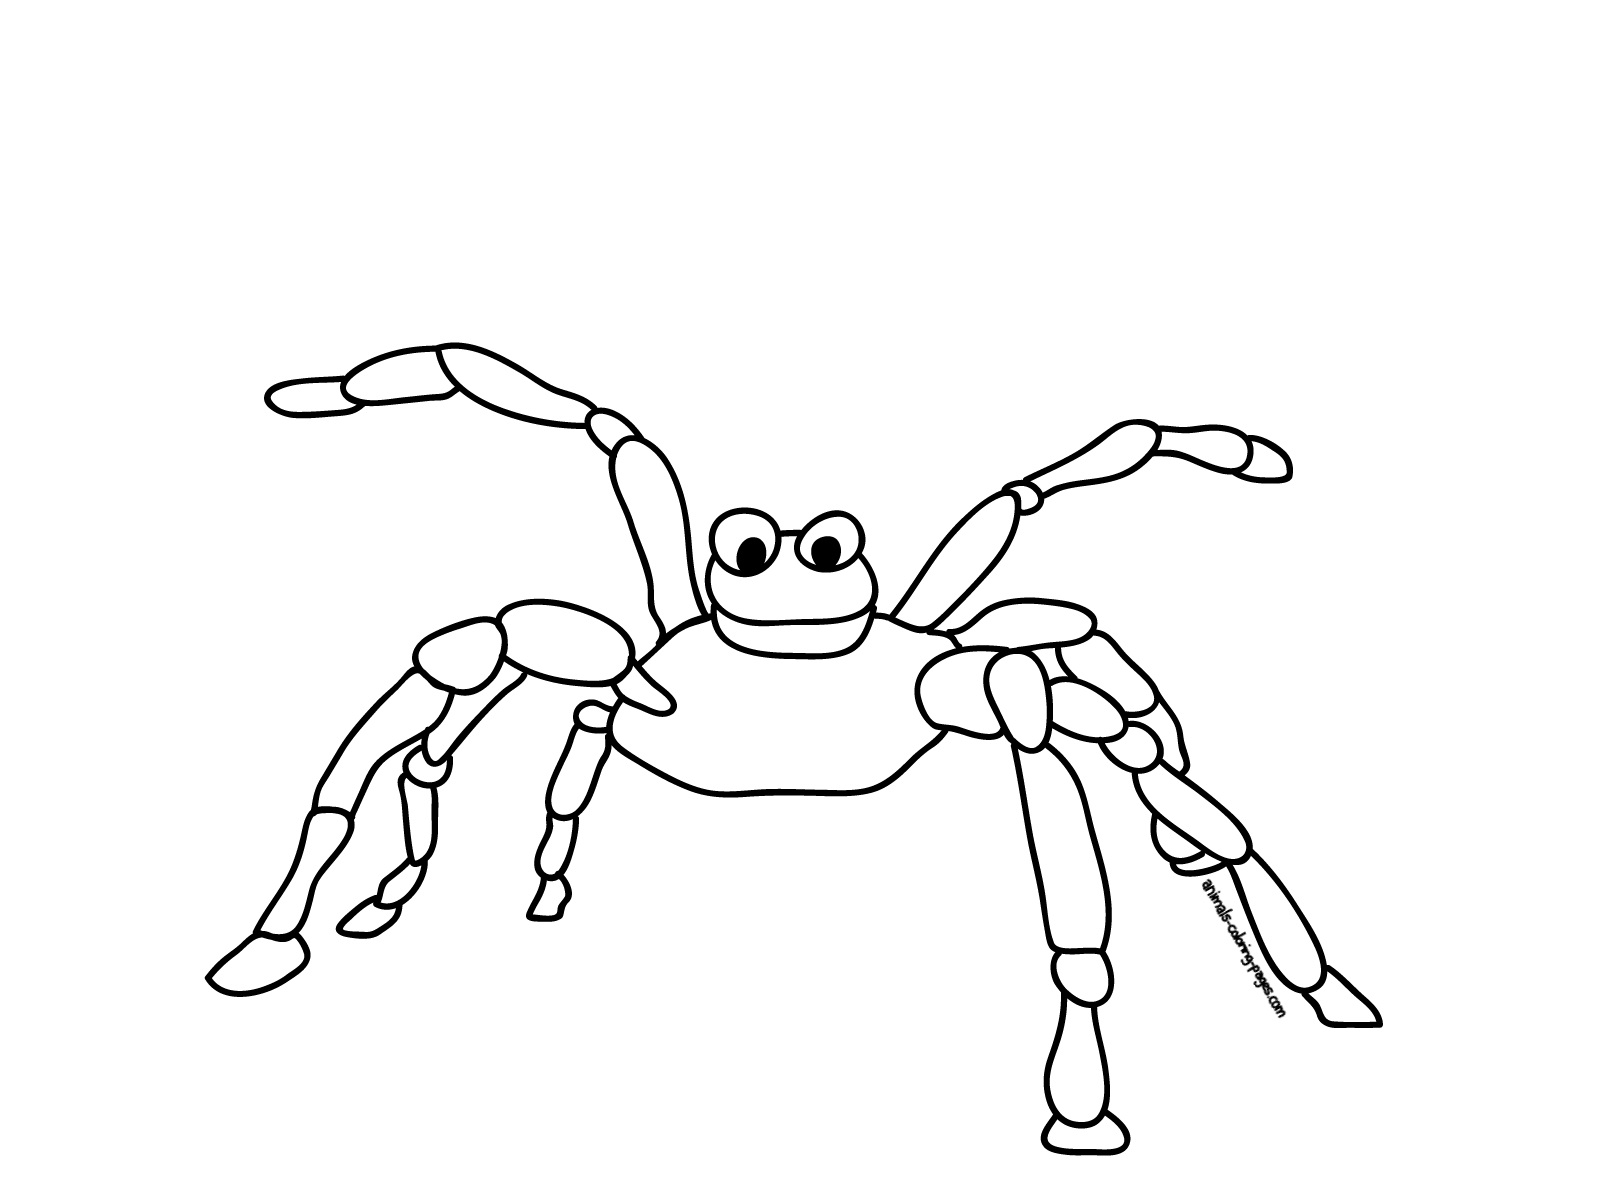 Free printable spider coloring pages for kids animal place for Spiders coloring pages